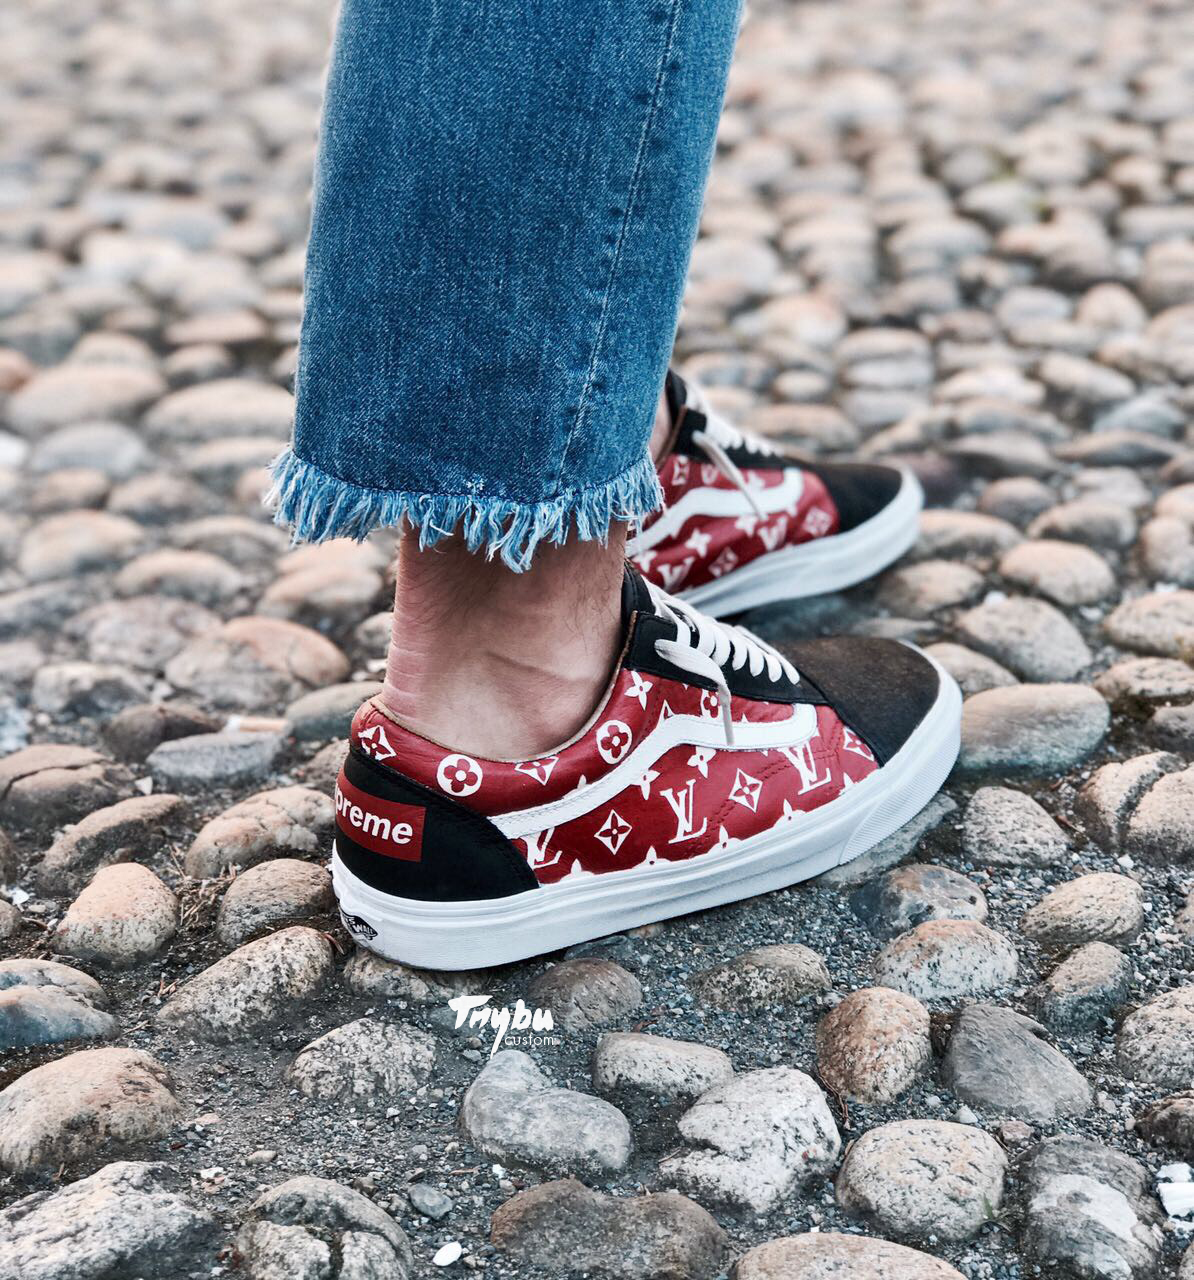 ded57f6789f6 By Trybu — Vans Old Skool Louis Vuitton x Supreme (custom)